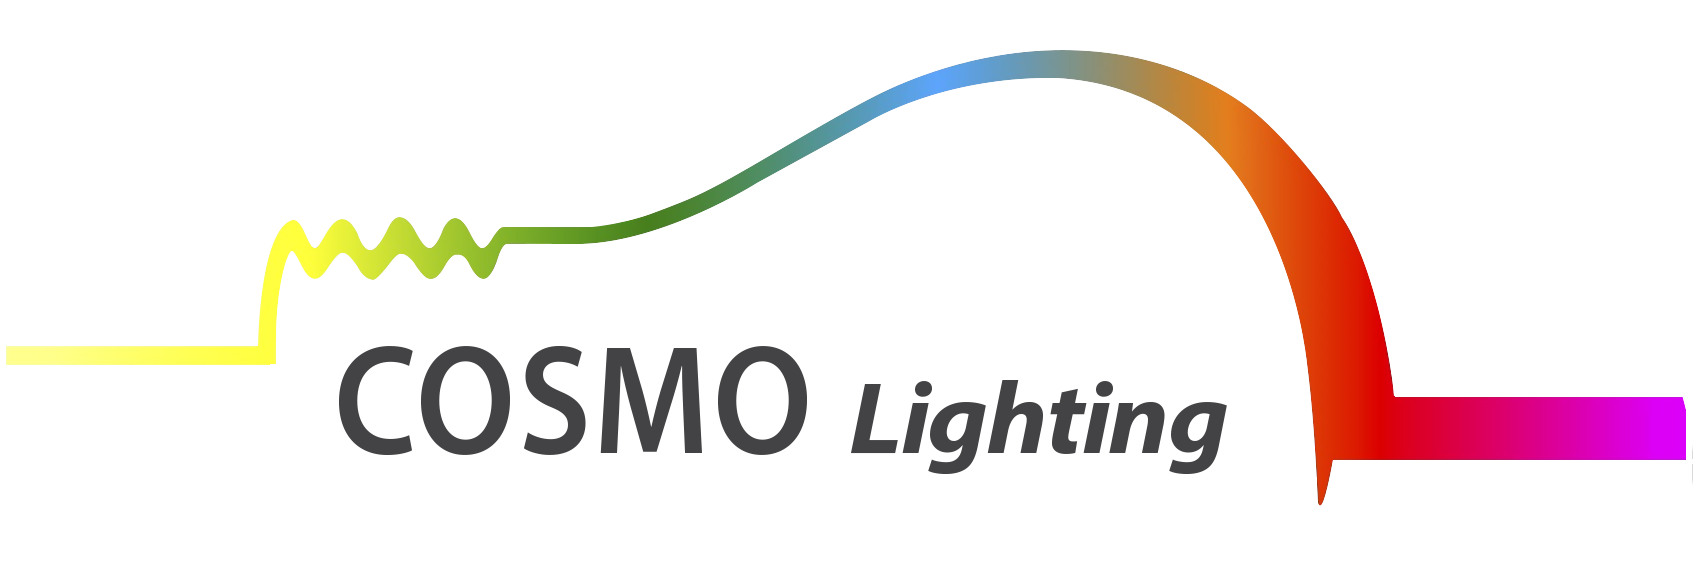 Cosmo Lighthing